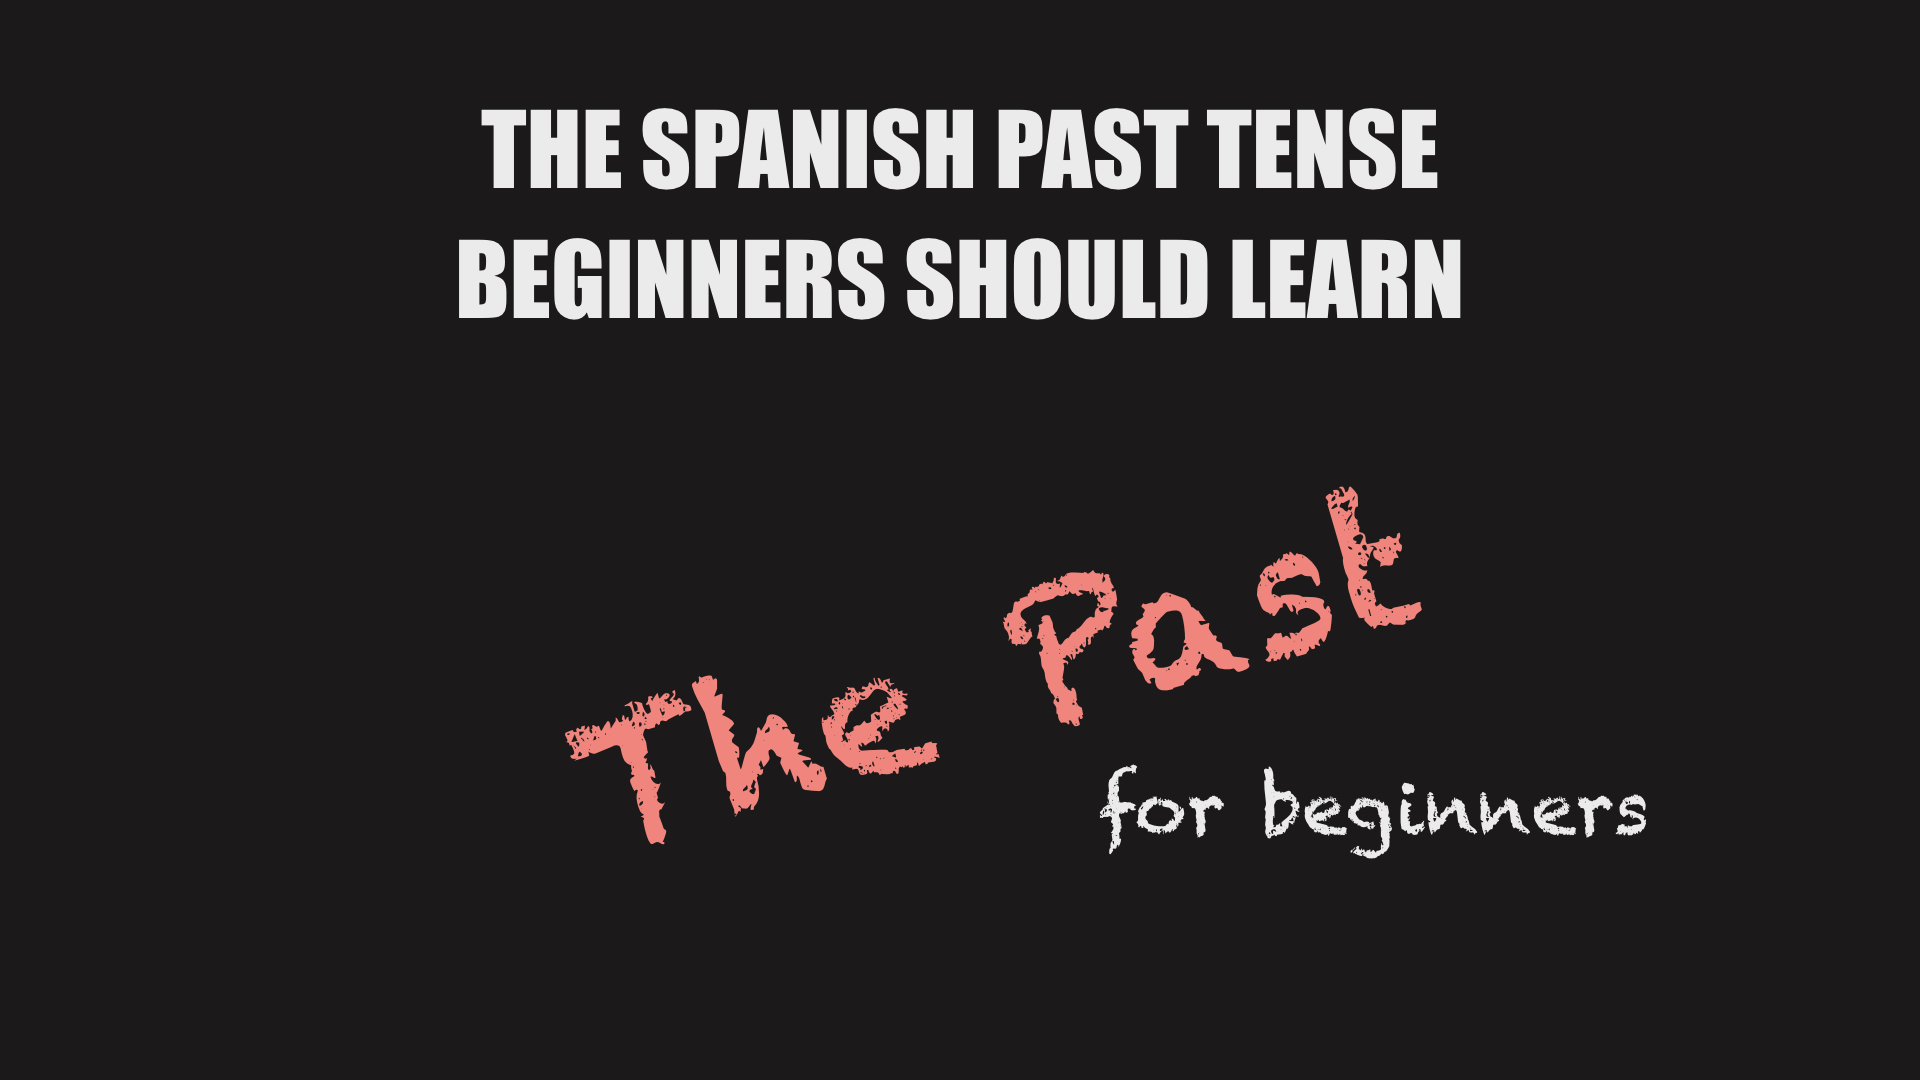 The ipa chart for language learners the spanish past tense for beginners biocorpaavc Choice Image